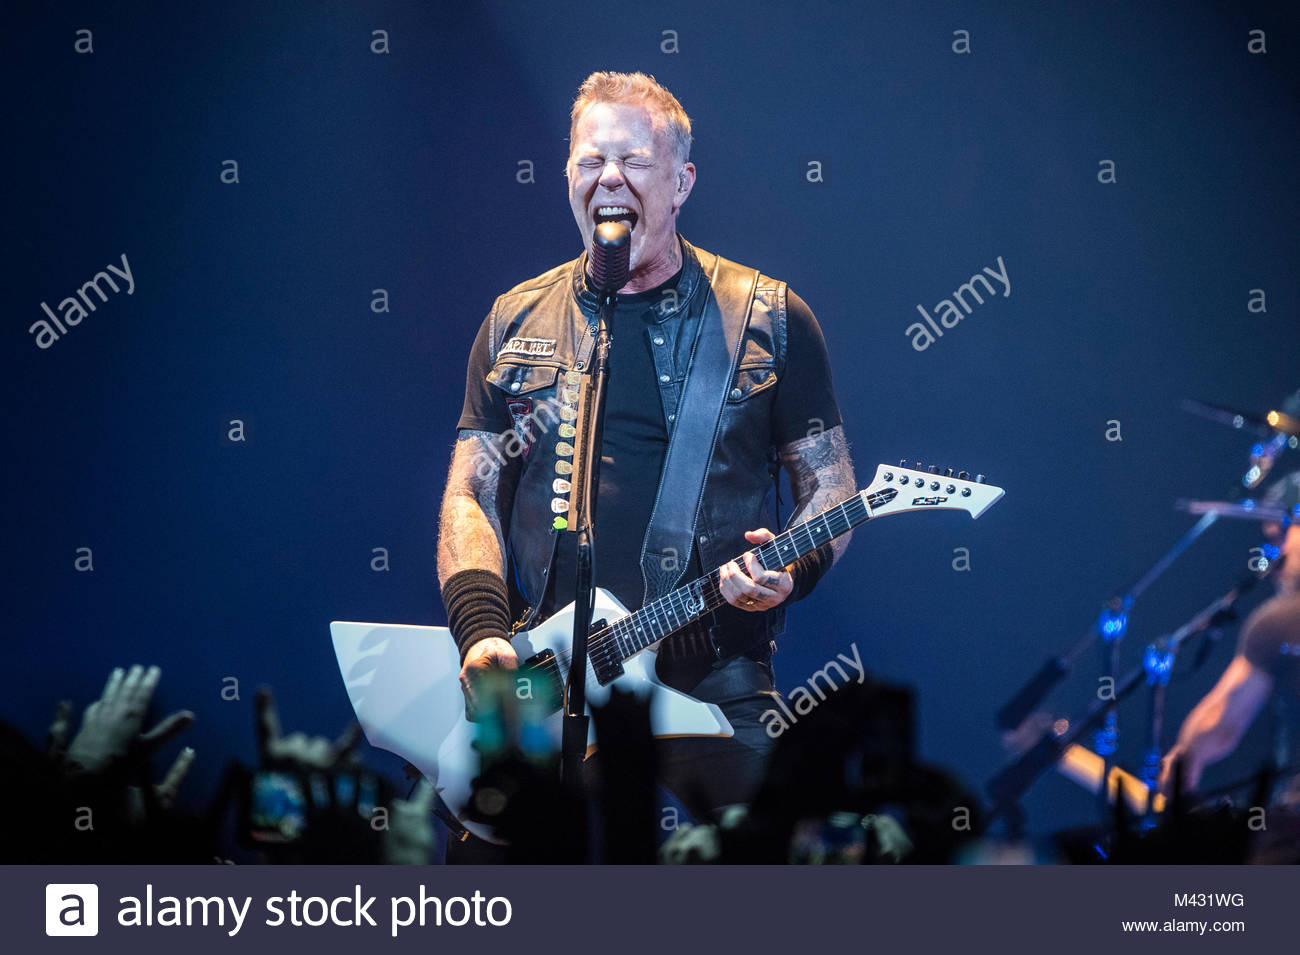 Vasco Concerto Bologna American Band Metallica Performs Live On Stage At Unipol Arena In